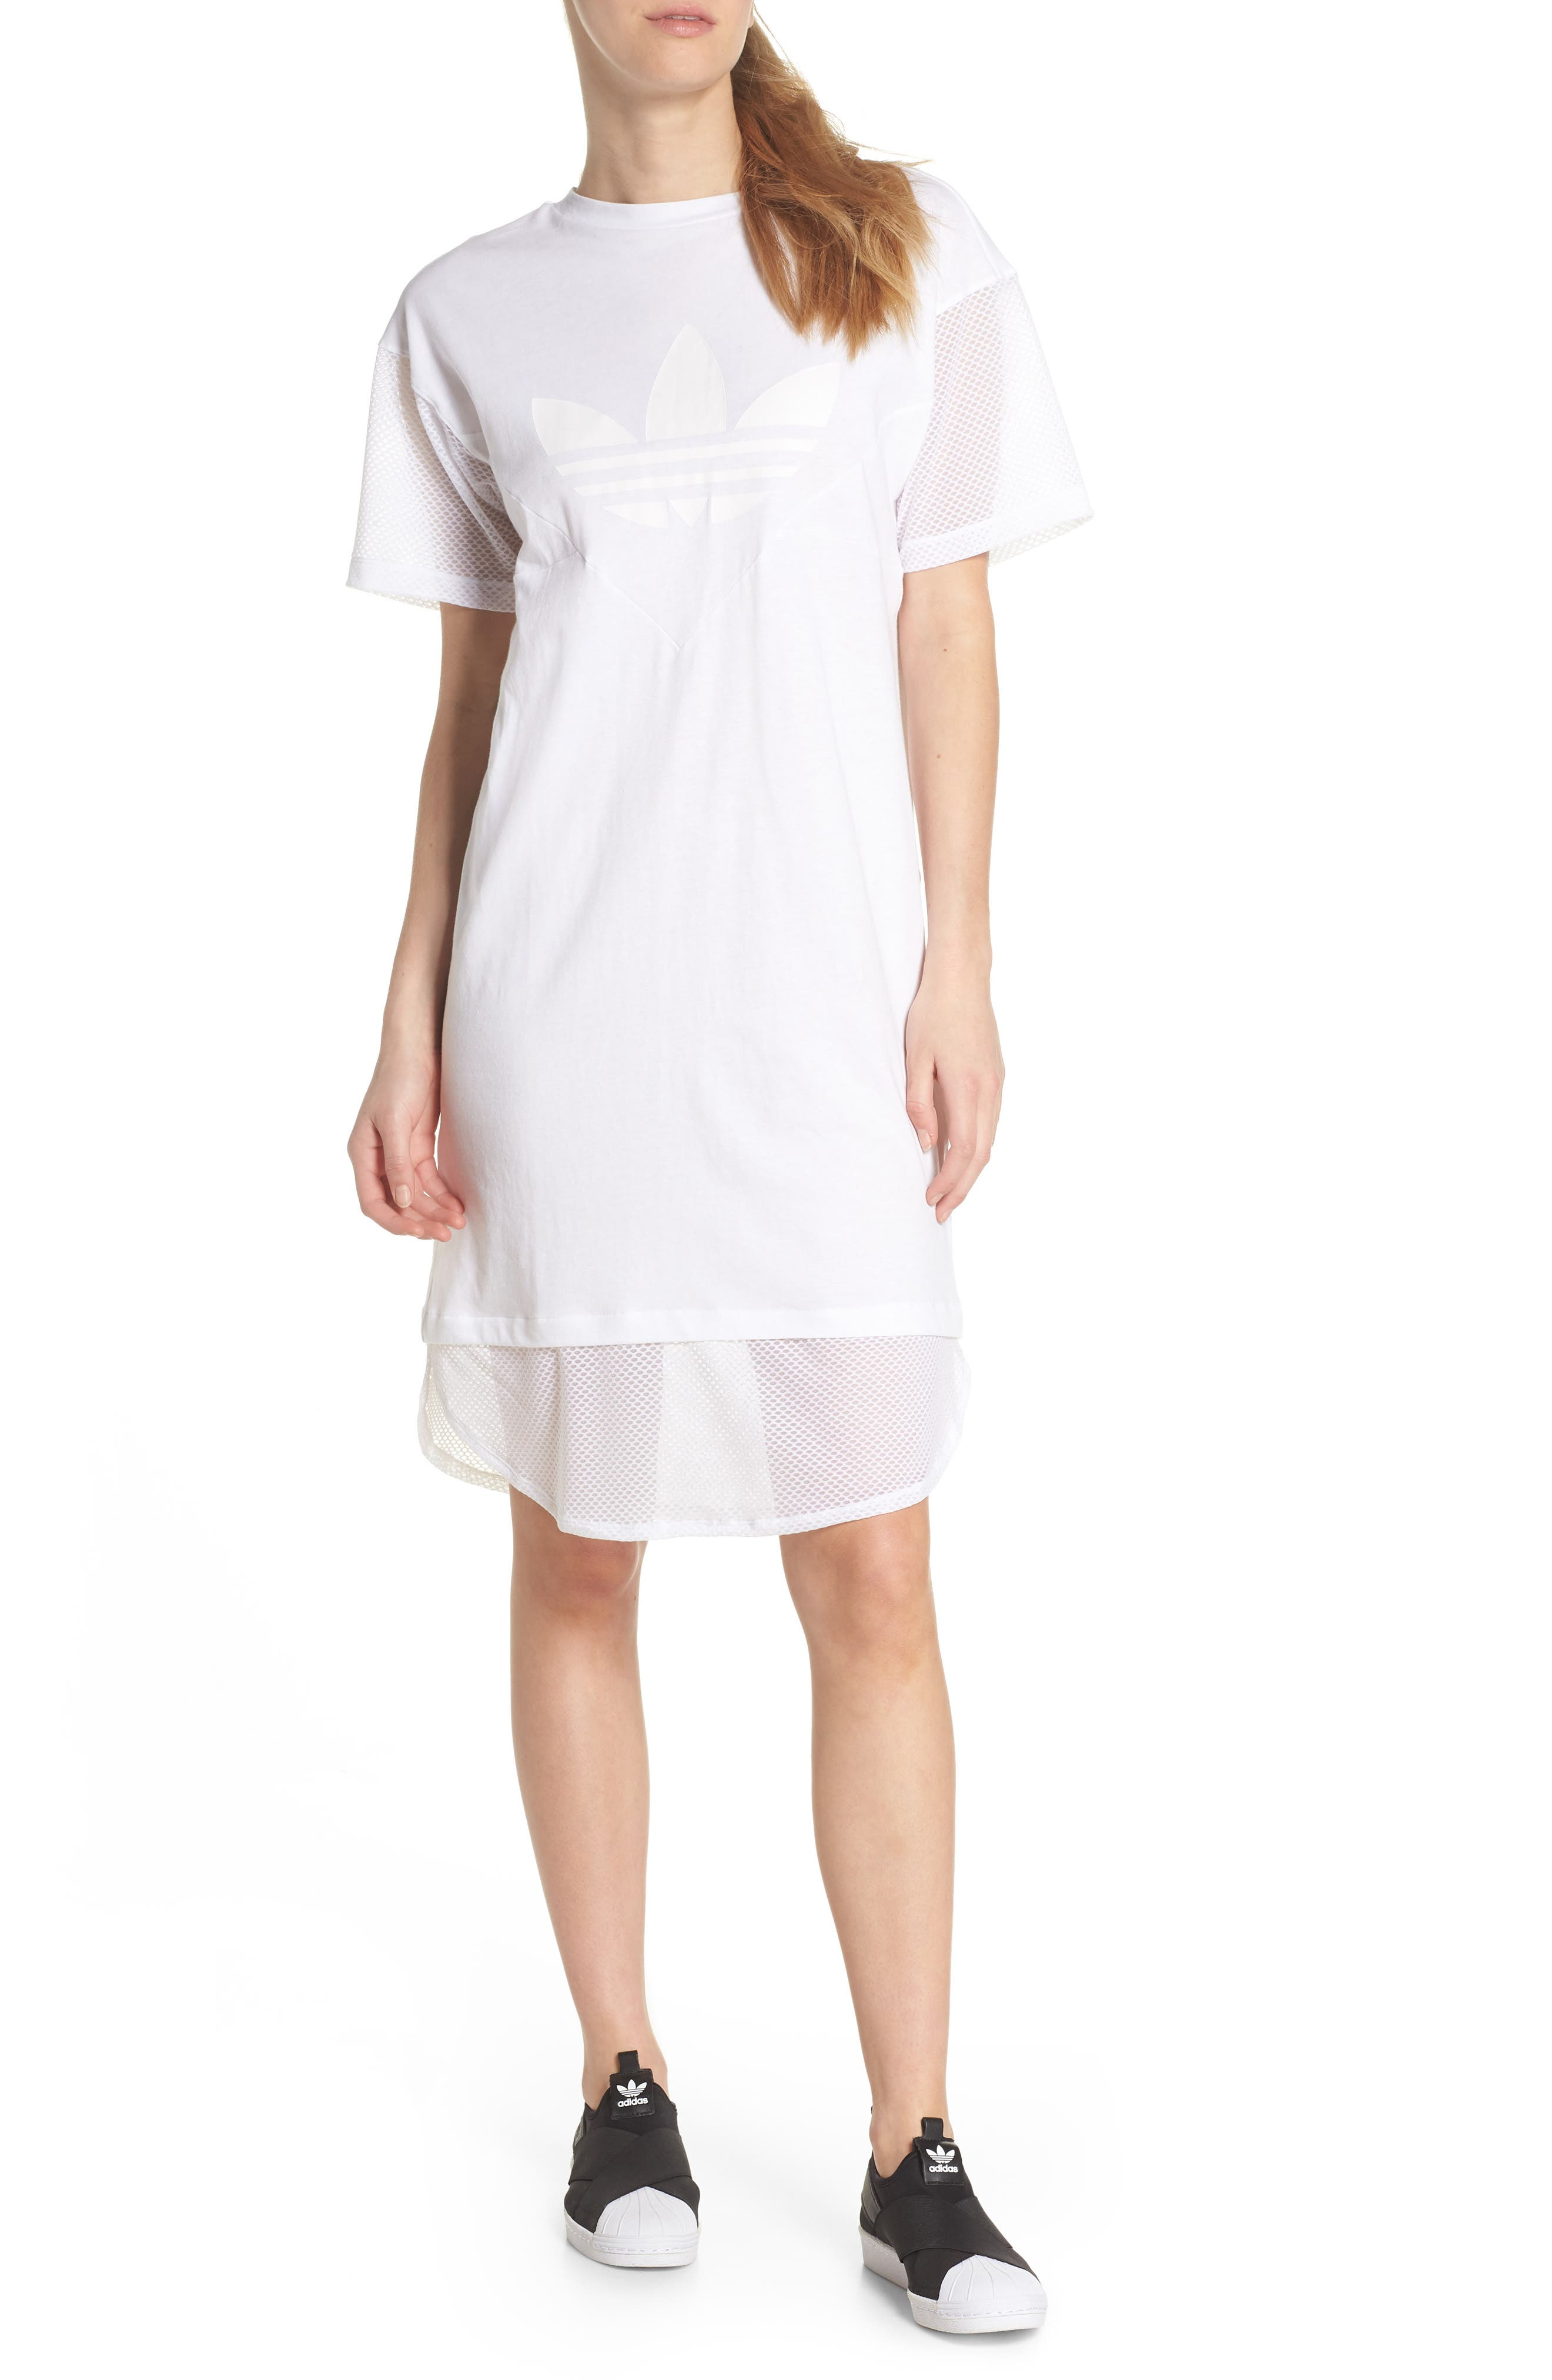 CLRDO T-Shirt Dress,                             Main thumbnail 1, color,                             White